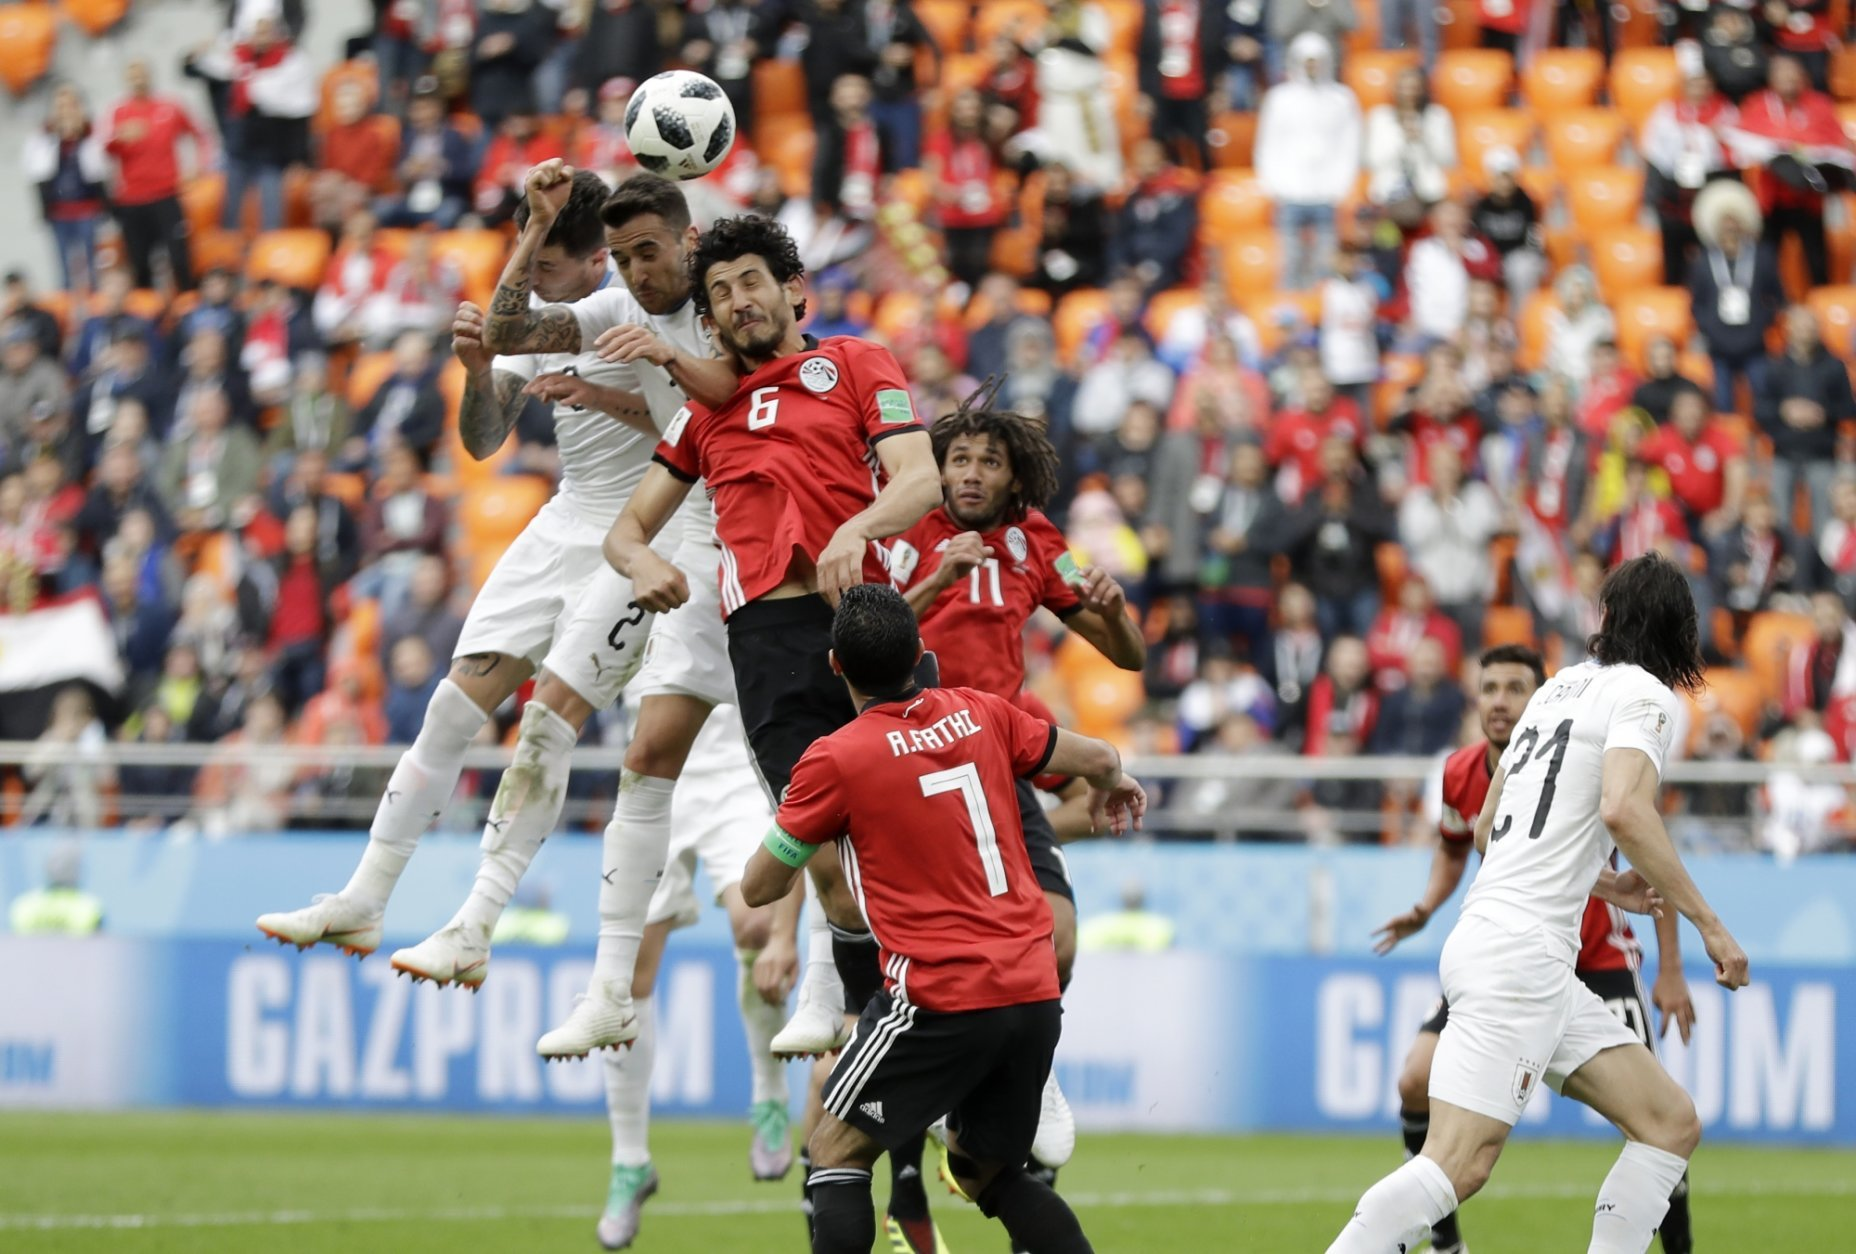 Uruguay's Jose Gimenez, second from top left, scores his side's opening goal during the group A match between Egypt and Uruguay at the 2018 soccer World Cup in the Yekaterinburg Arena in Yekaterinburg, Russia, Friday, June 15, 2018. (AP Photo/Natacha Pisarenko)